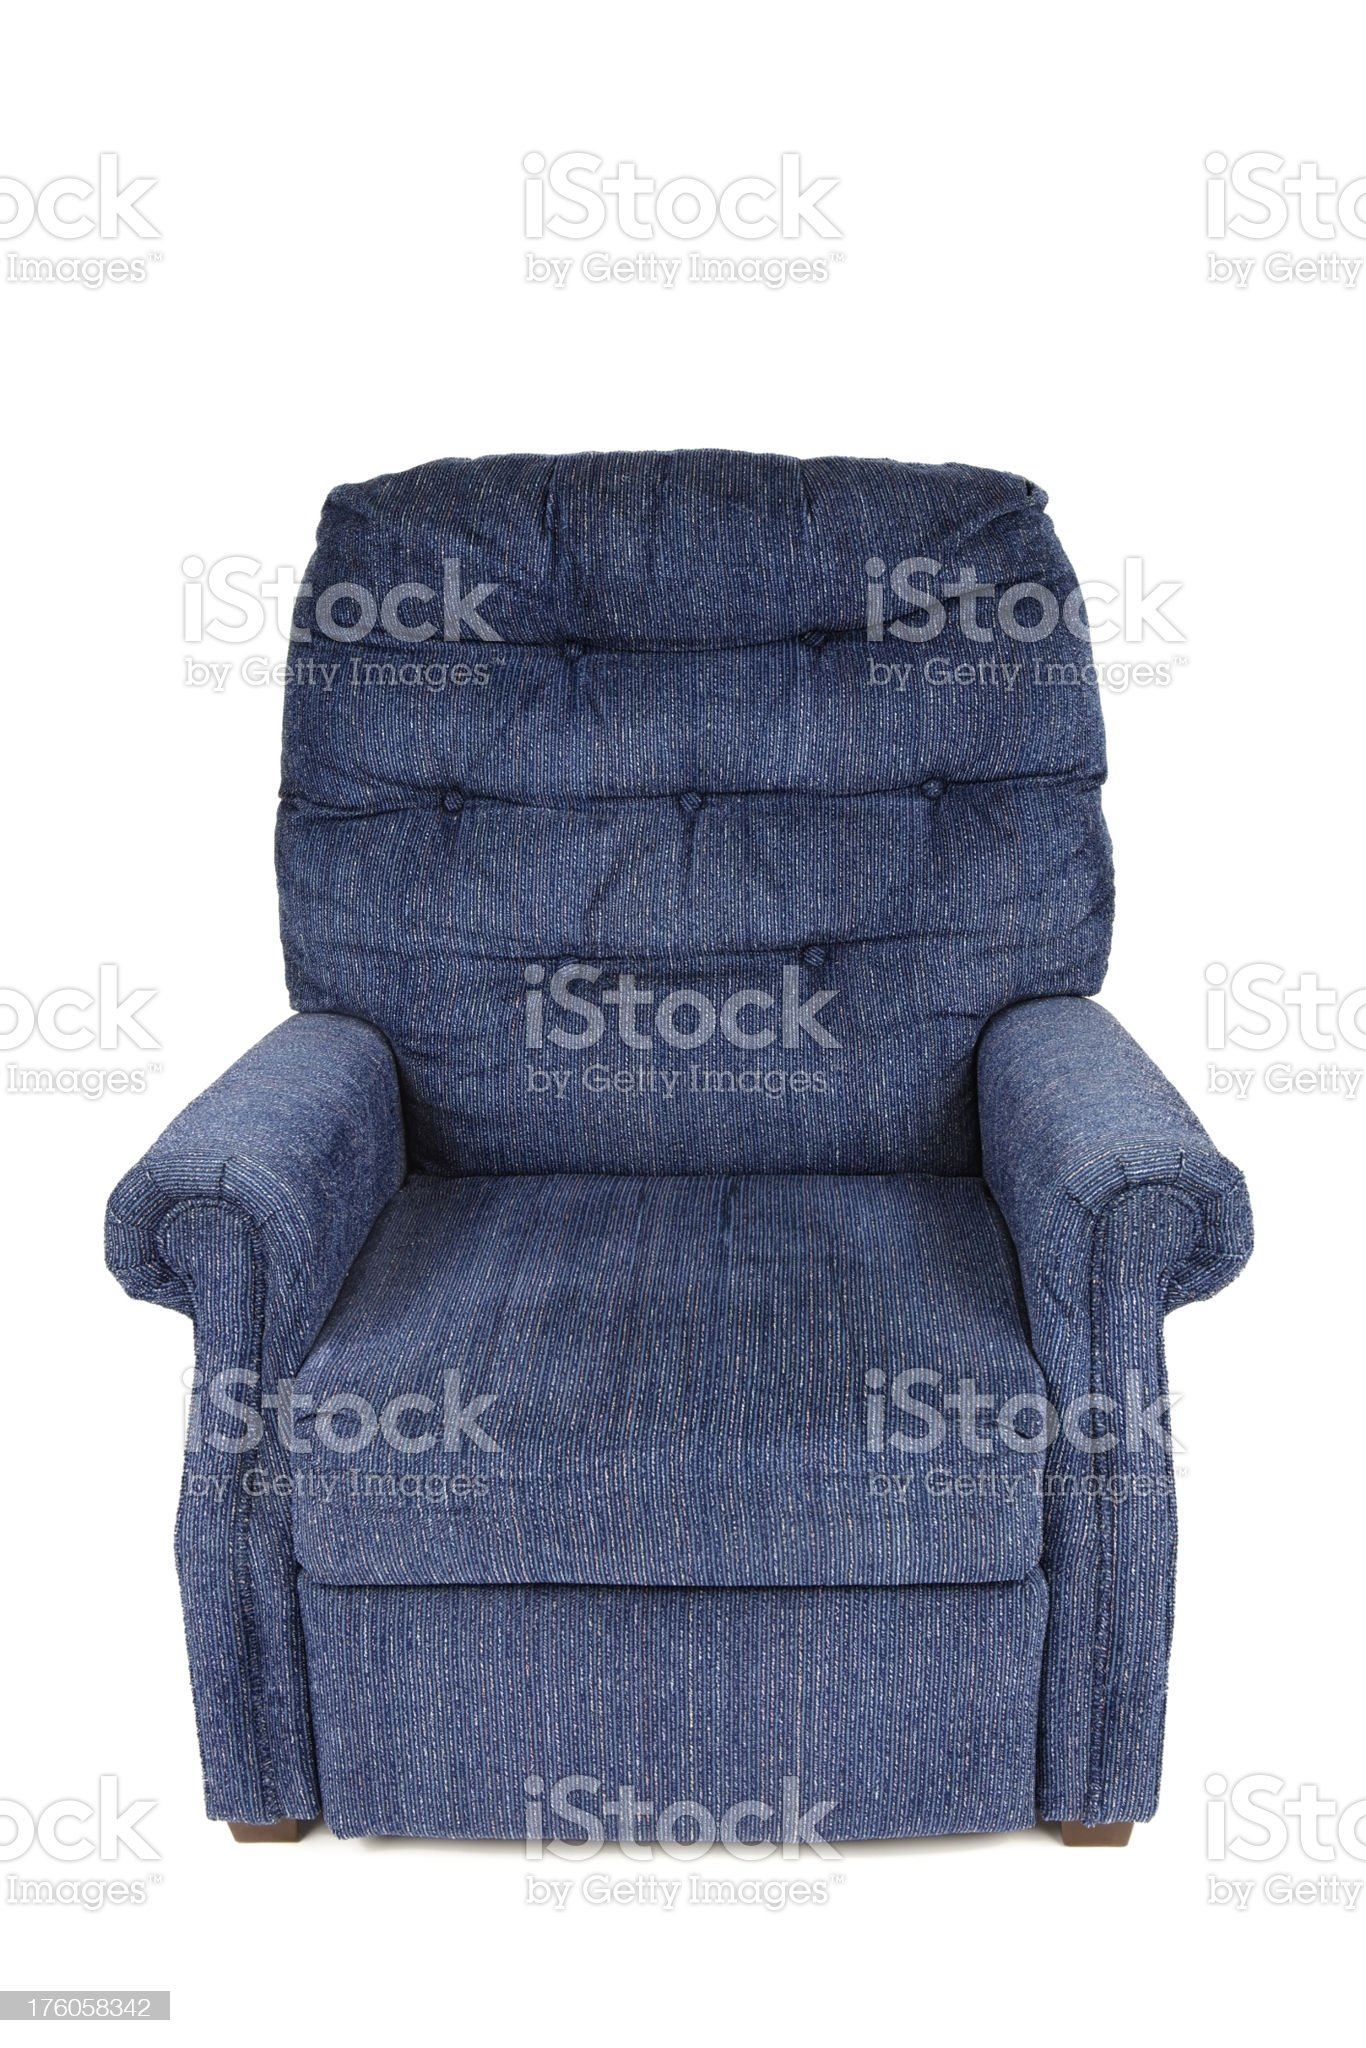 Blue Recliner Chair royalty-free stock photo